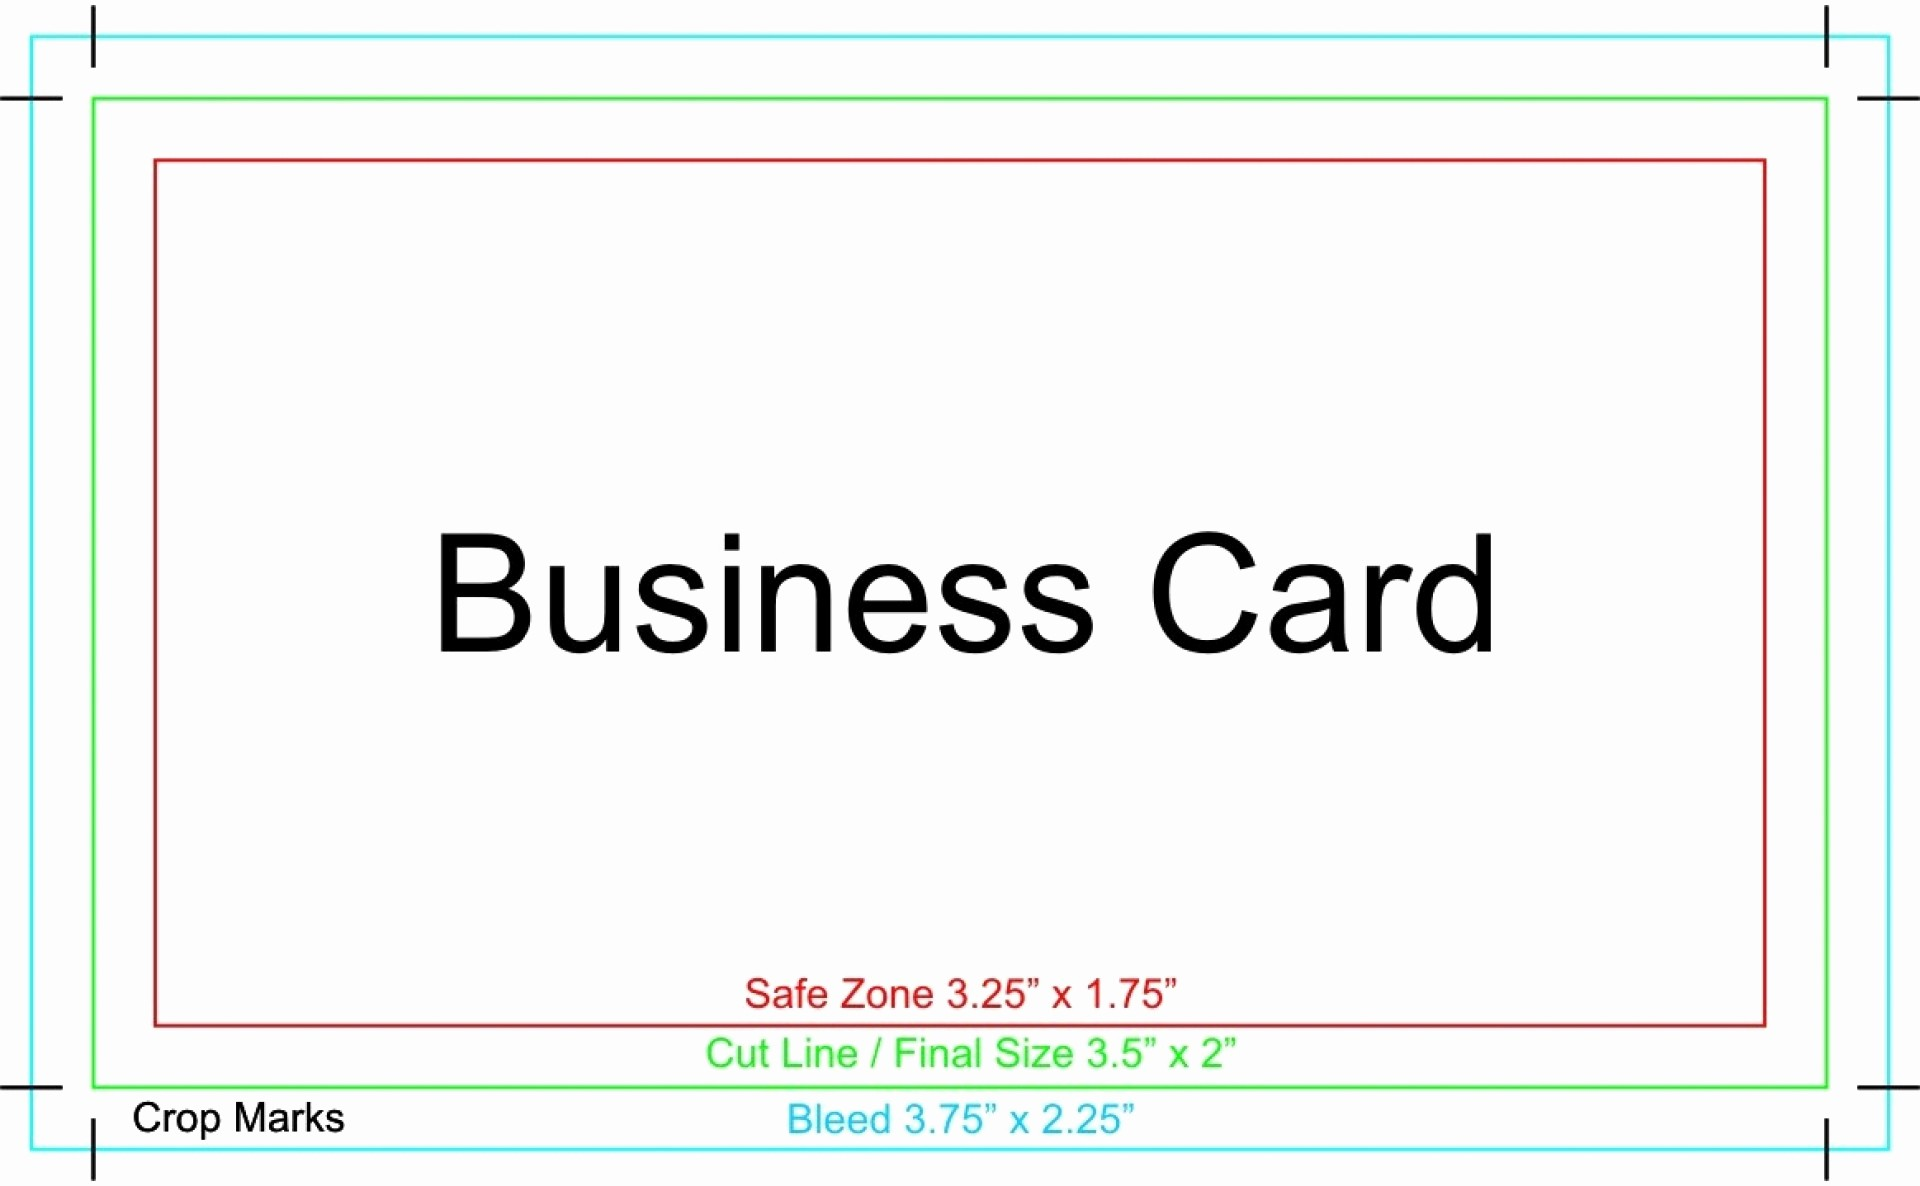 Microsoft Business Card Template Free Inspirational 022 Microsoft Word Business Card Template with Crop Marks